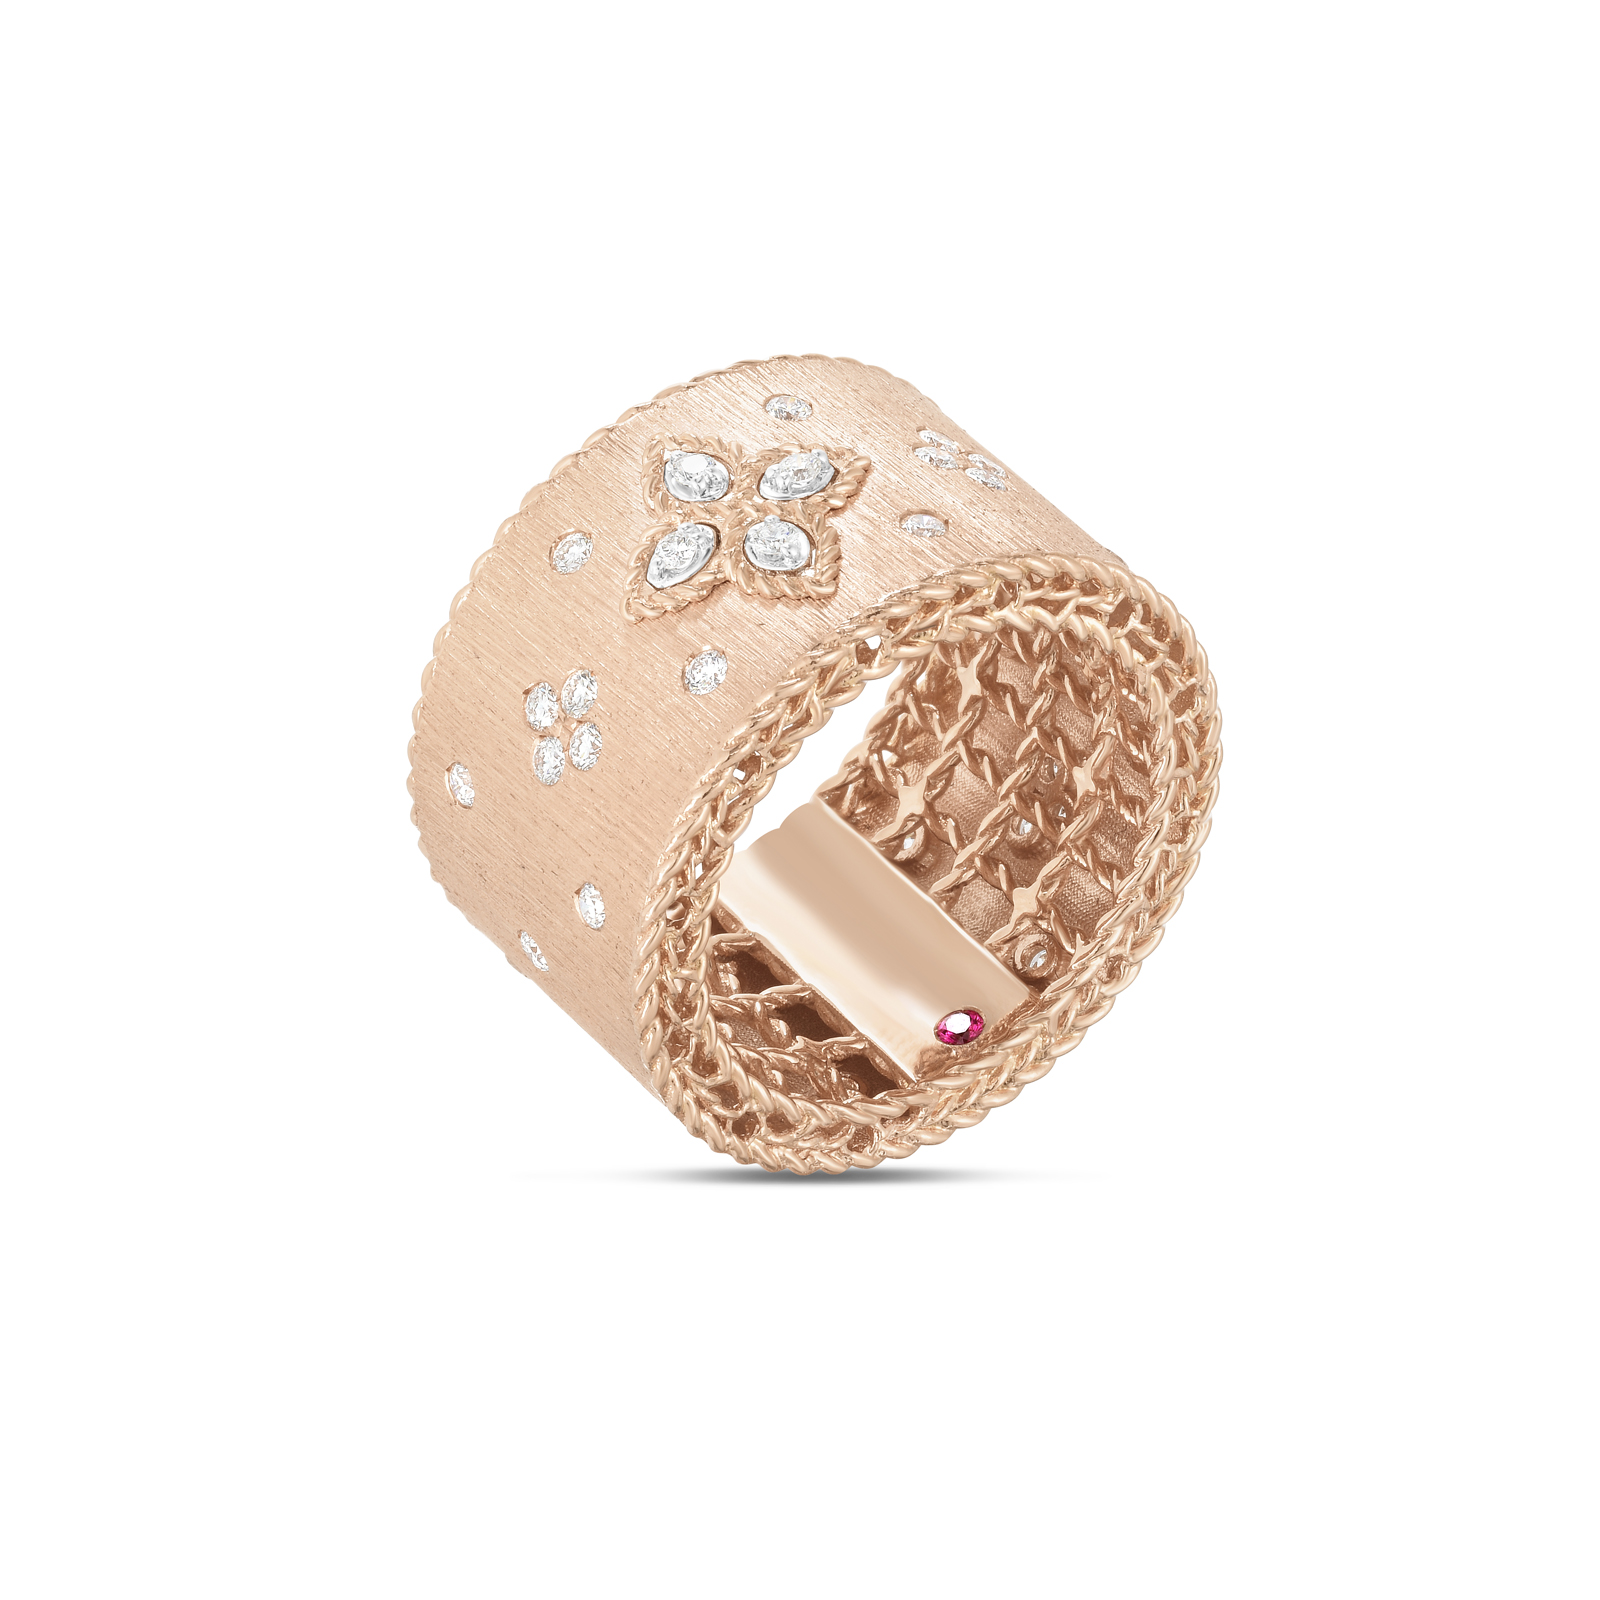 Venetian Princess Bangle - ADR777BA2871